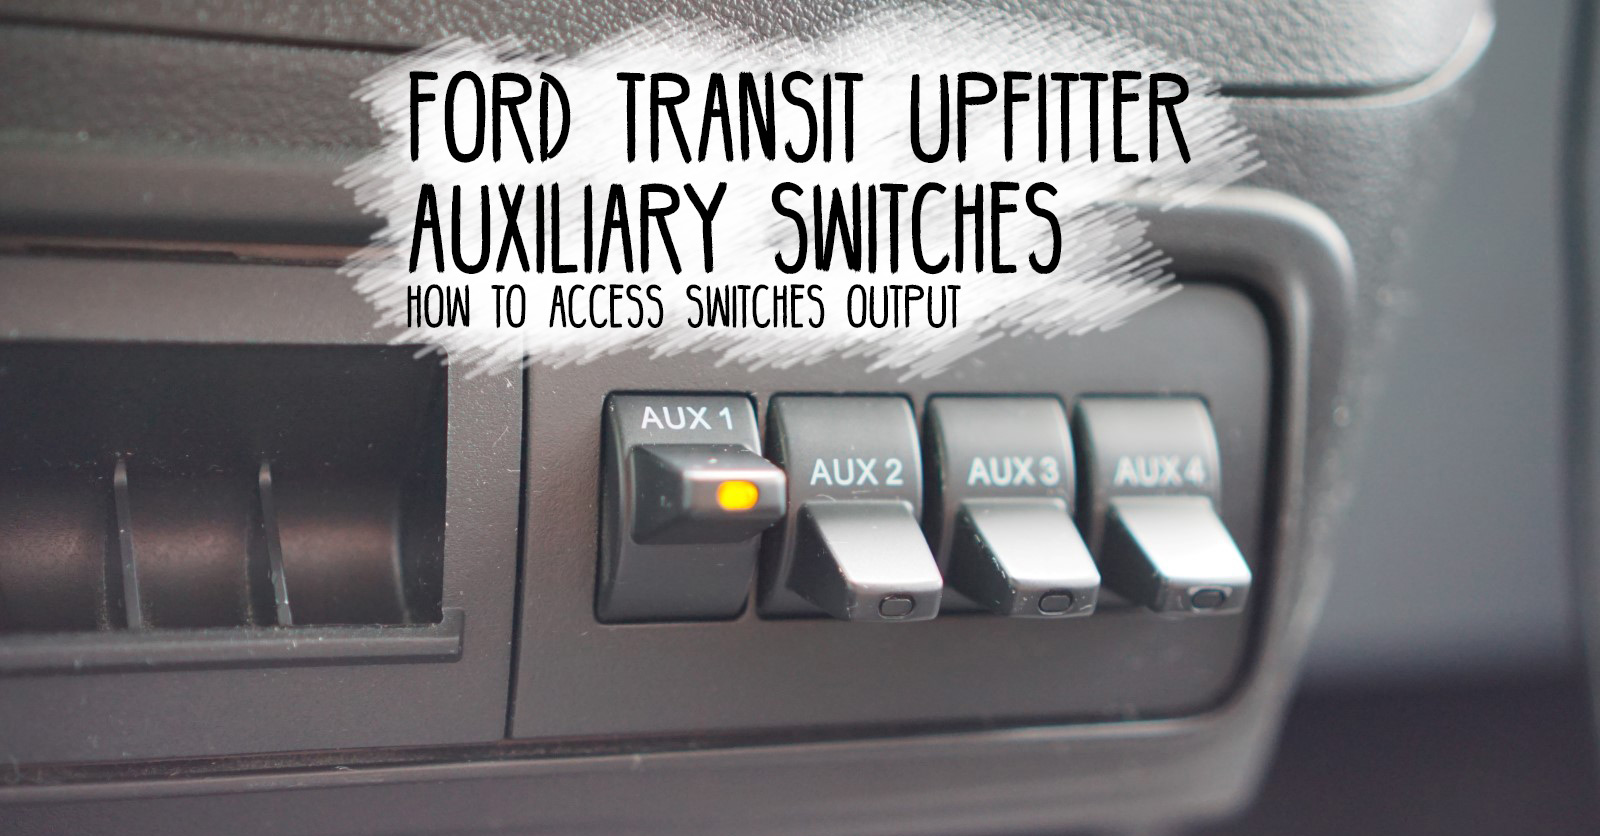 Ford Transit Upfitter Auxiliary Switches Faroutride